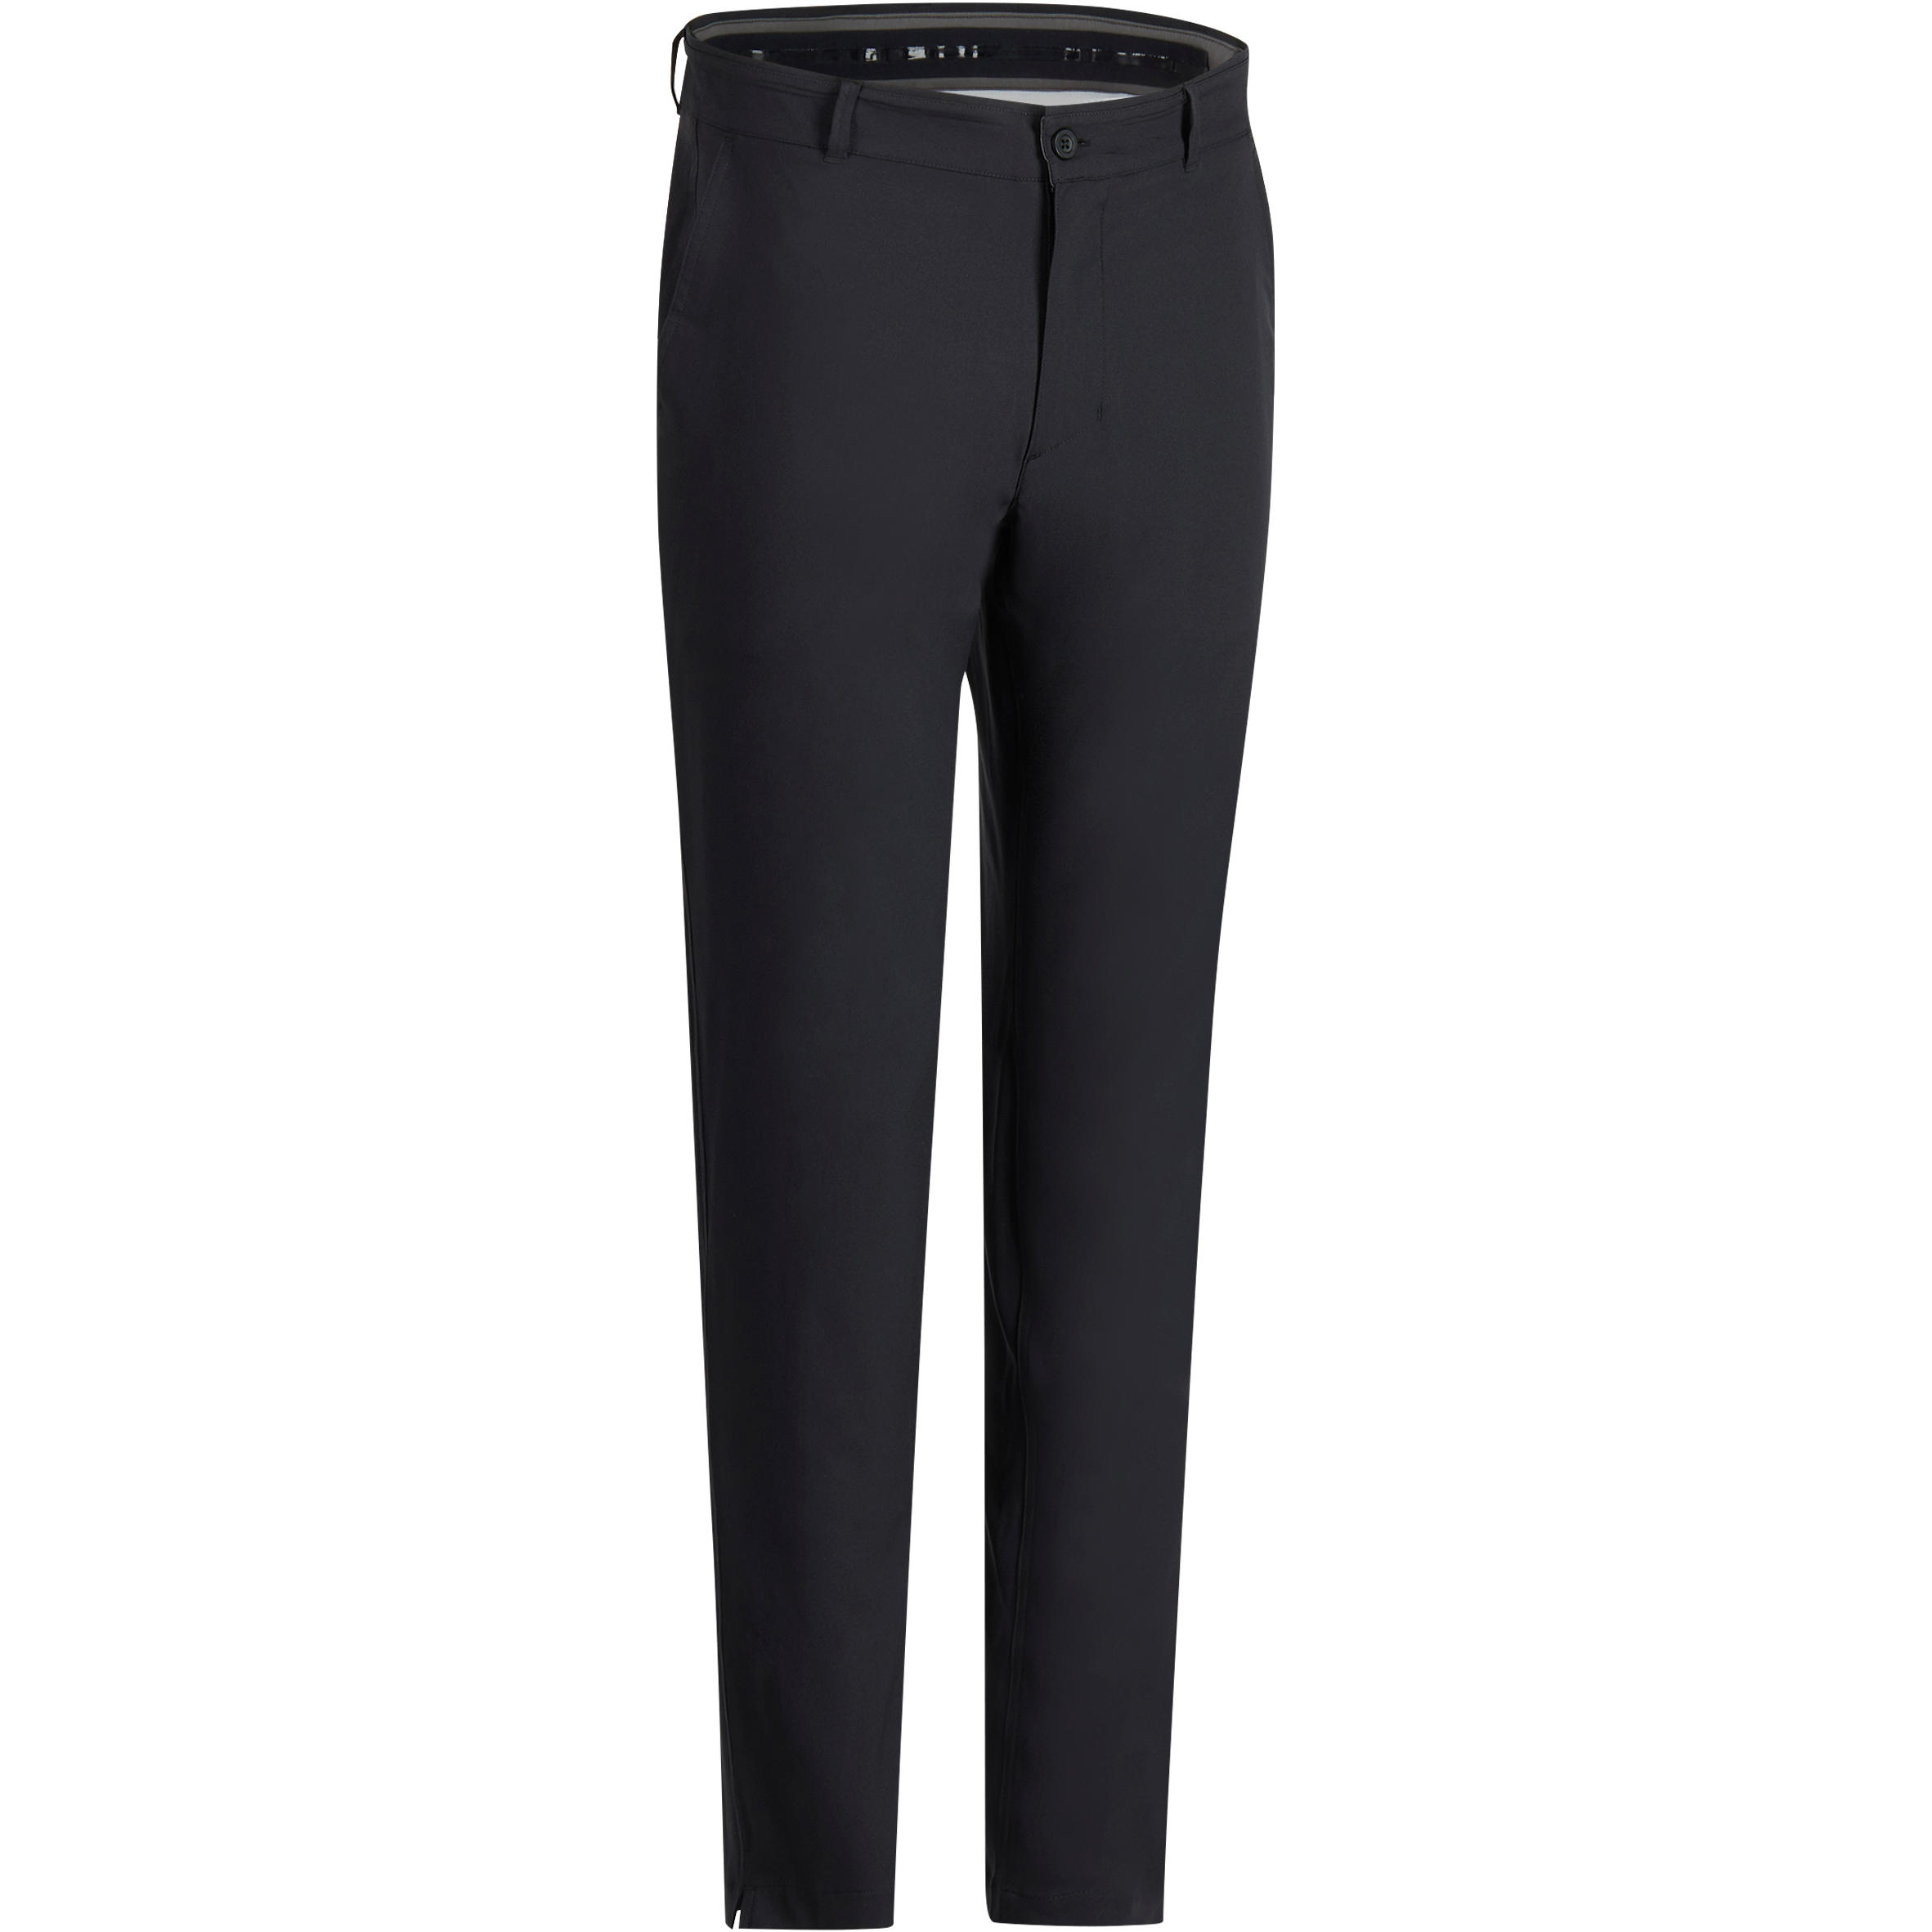 900 Men's Golf Warm Weather Trousers - Black